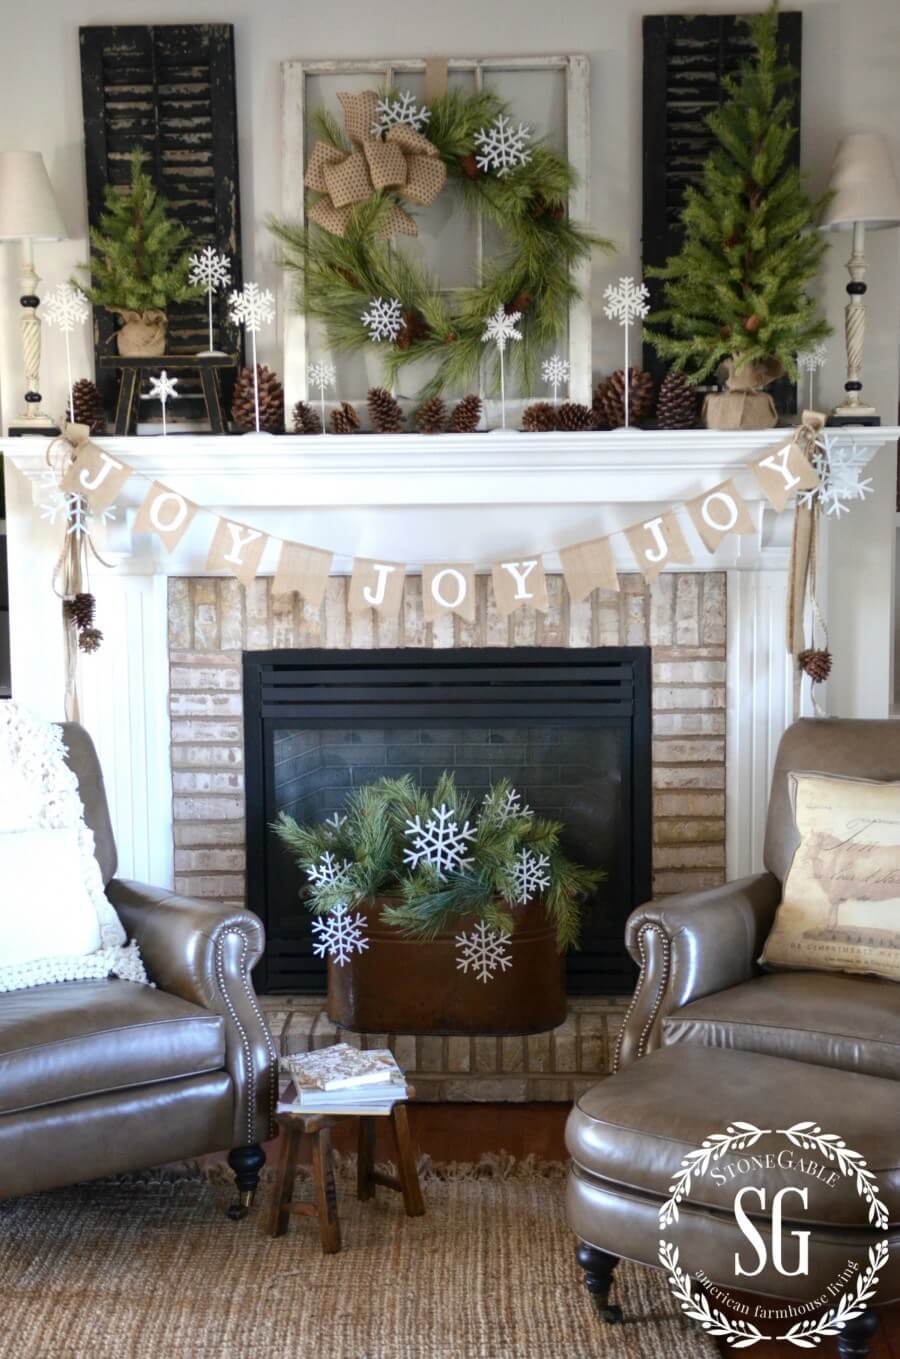 A Snowflake Motif with Cheerful Burlap Bunting